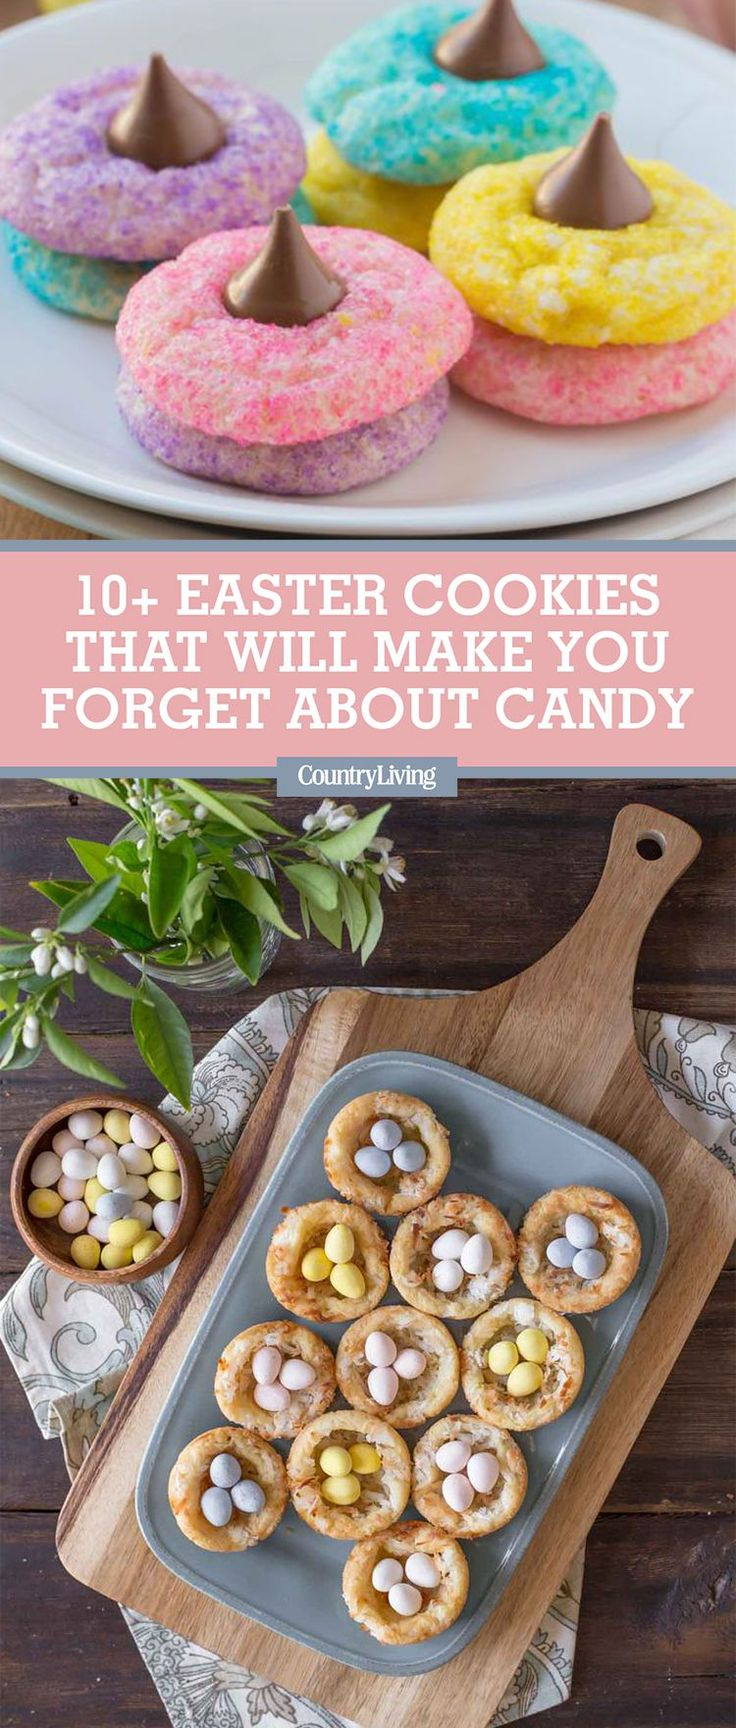 10 Easy Easter Cookie Recipes - Easter Cookie Decorating Ideas